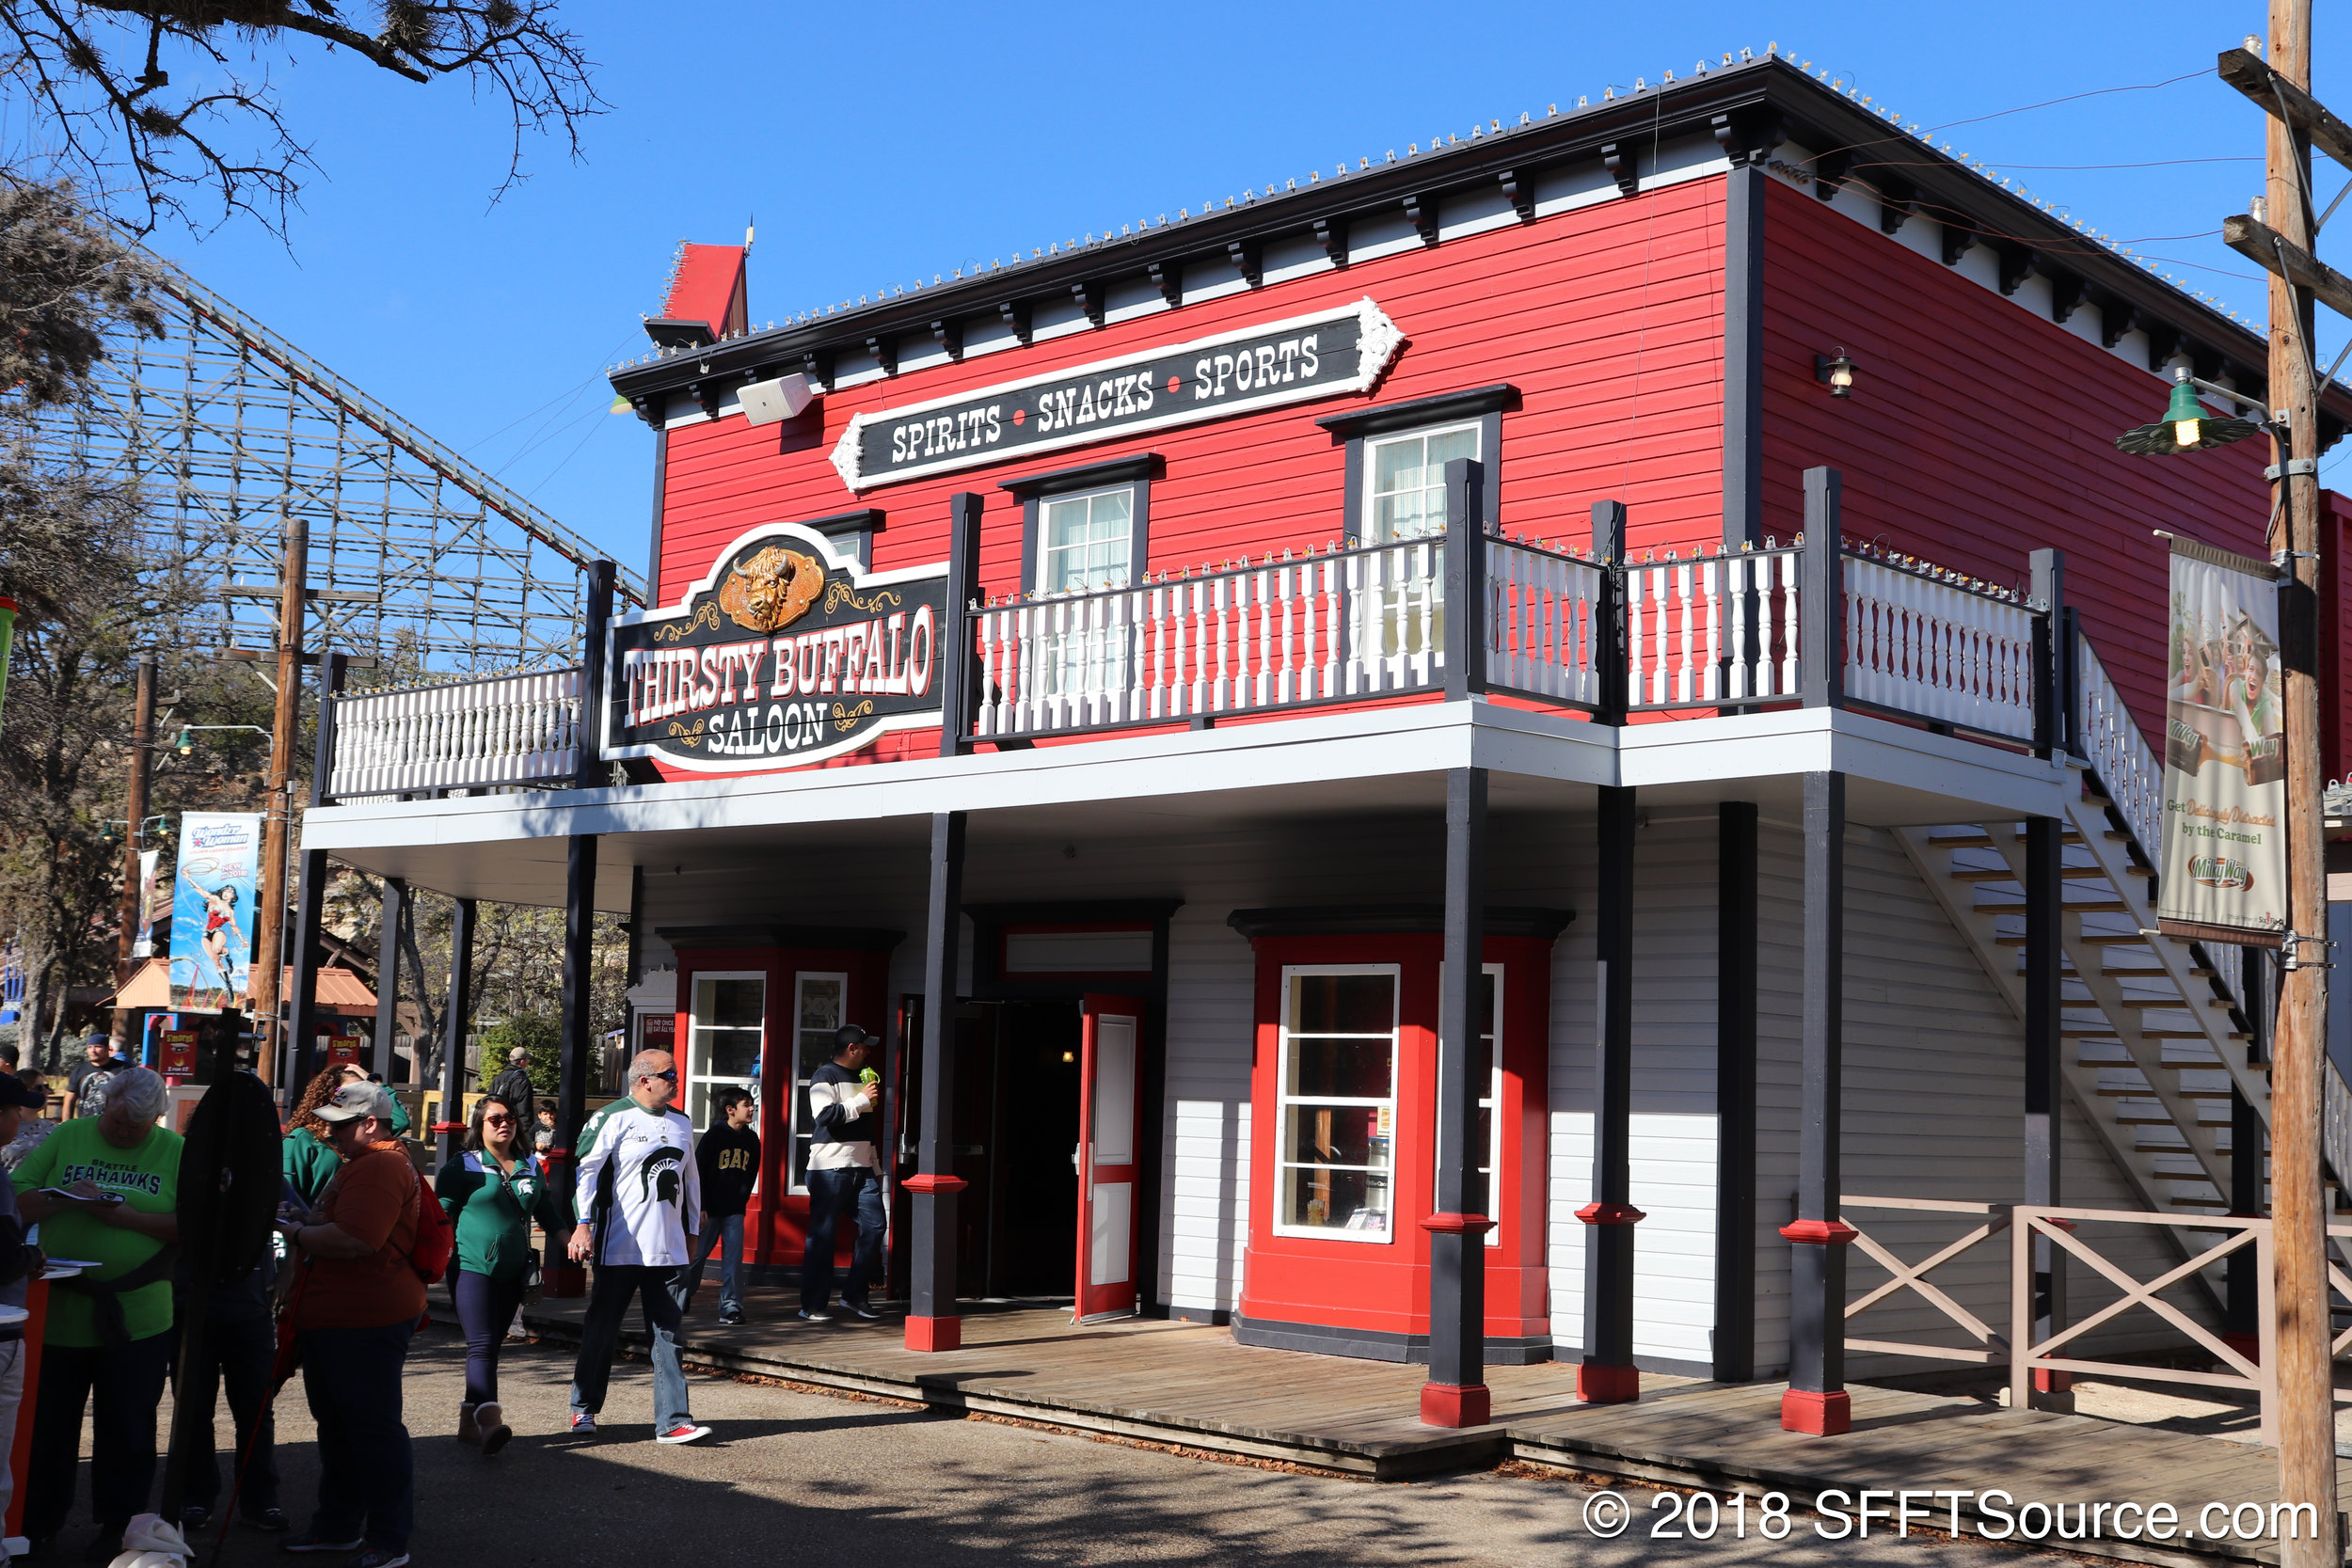 The exterior of Thirsty Buffalo Saloon.